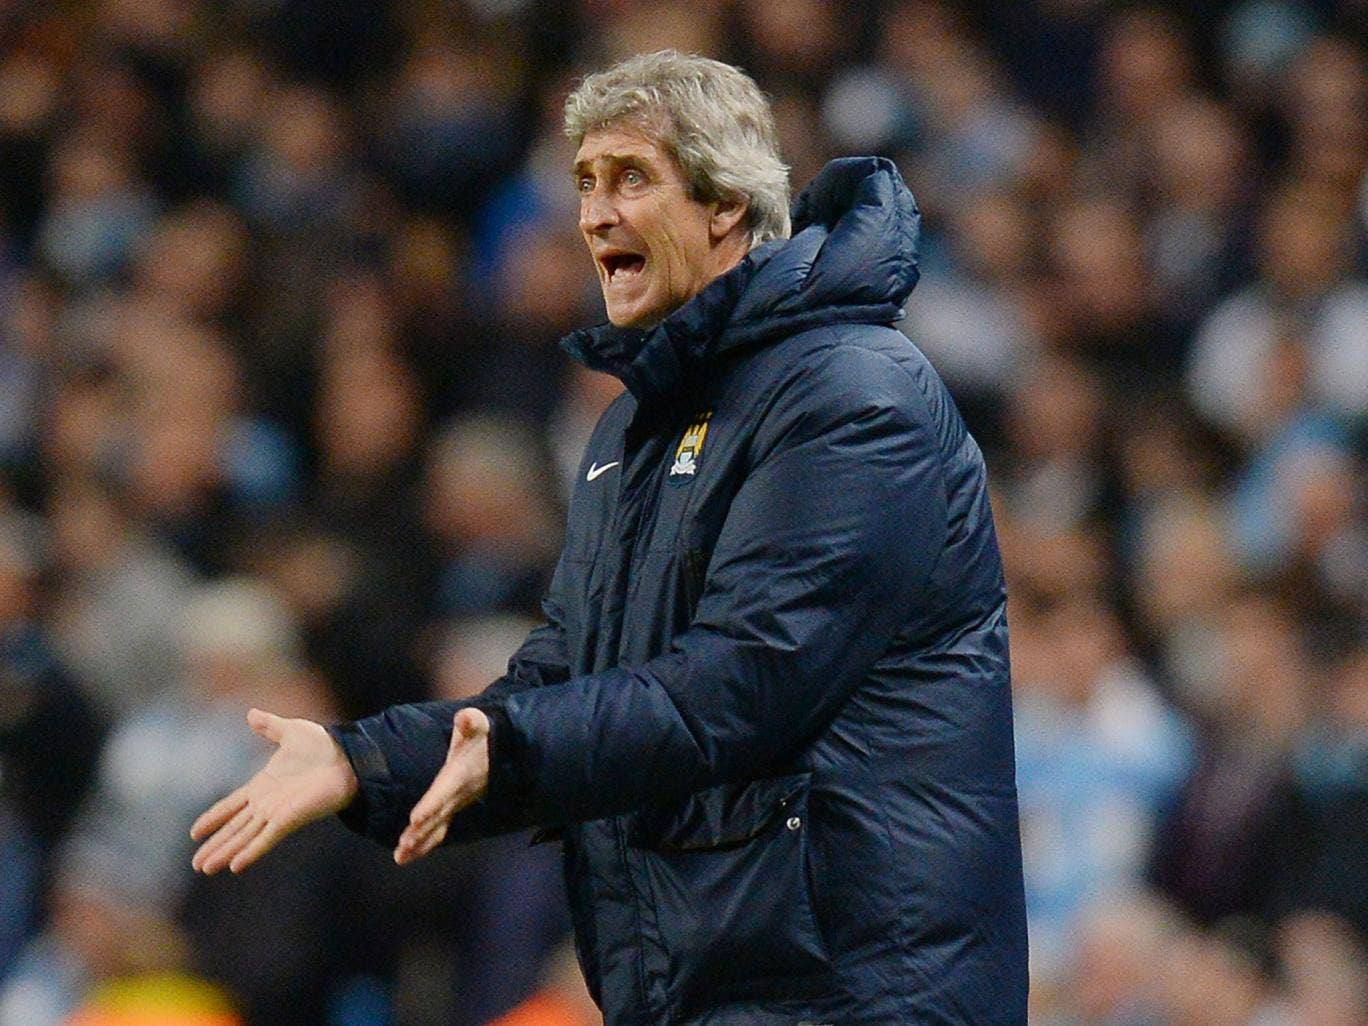 Manuel Pellegrini is showing the pressure and the effects of an ill thought out conspiracy theory